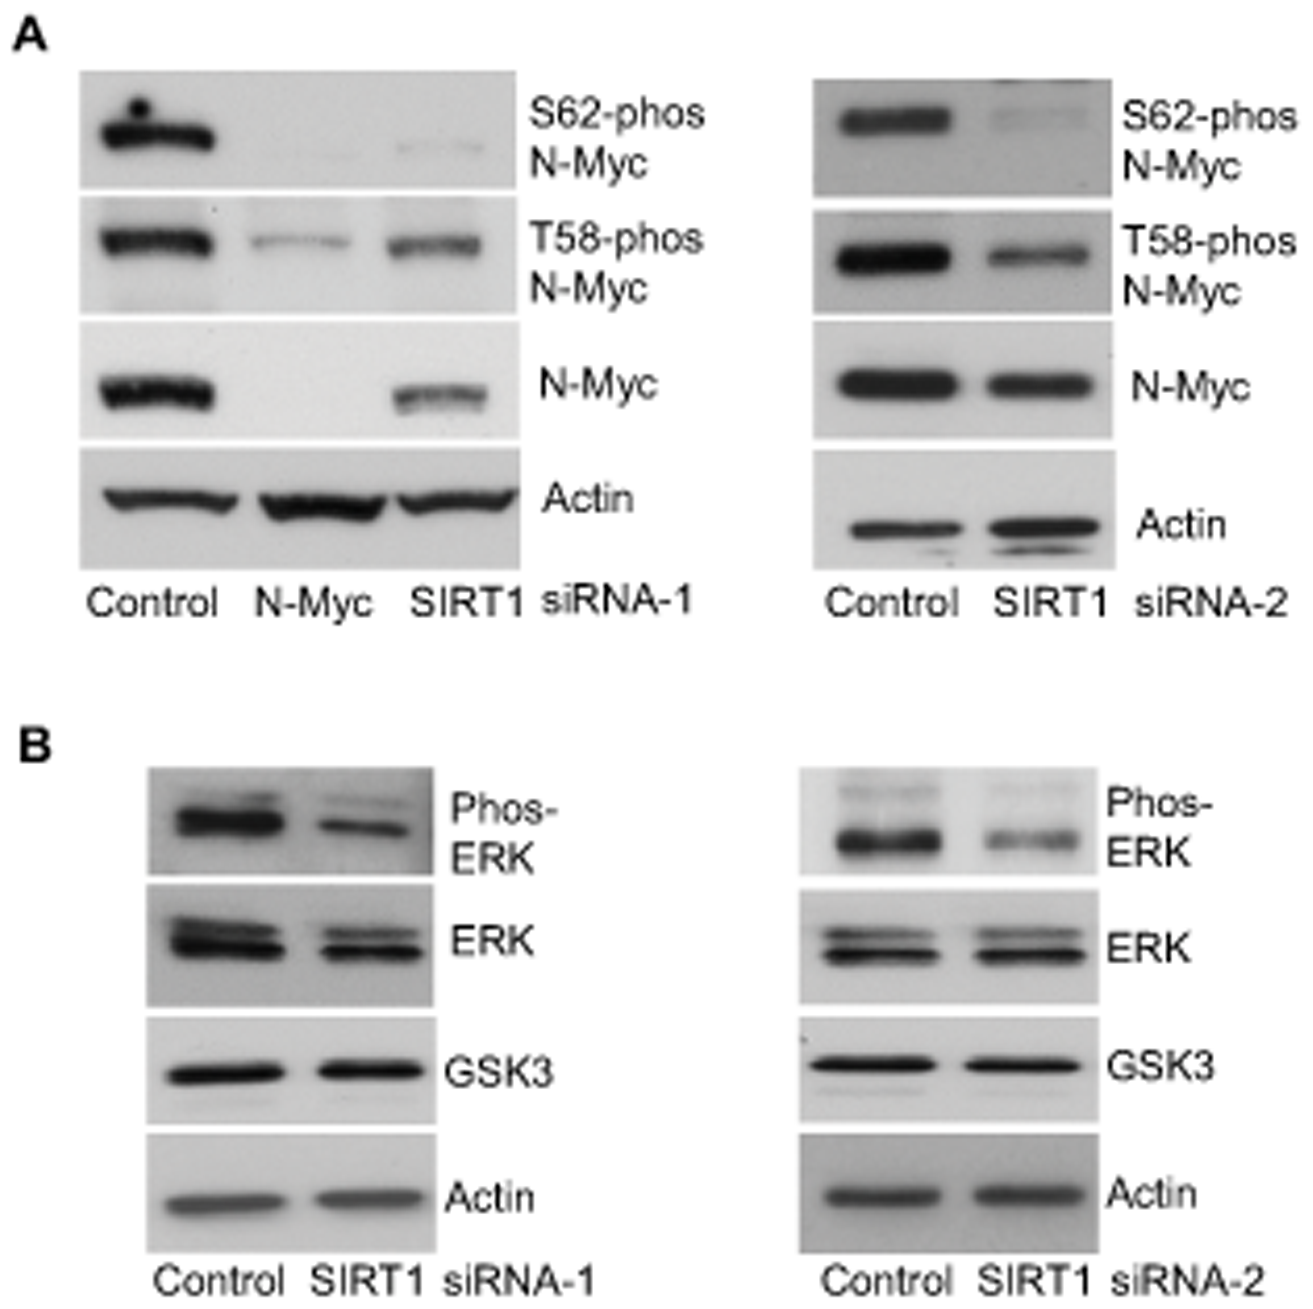 SIRT1 stabilizes N-Myc protein by promoting ERK protein phosphorylation and N-Myc protein phosphorylation at S62.